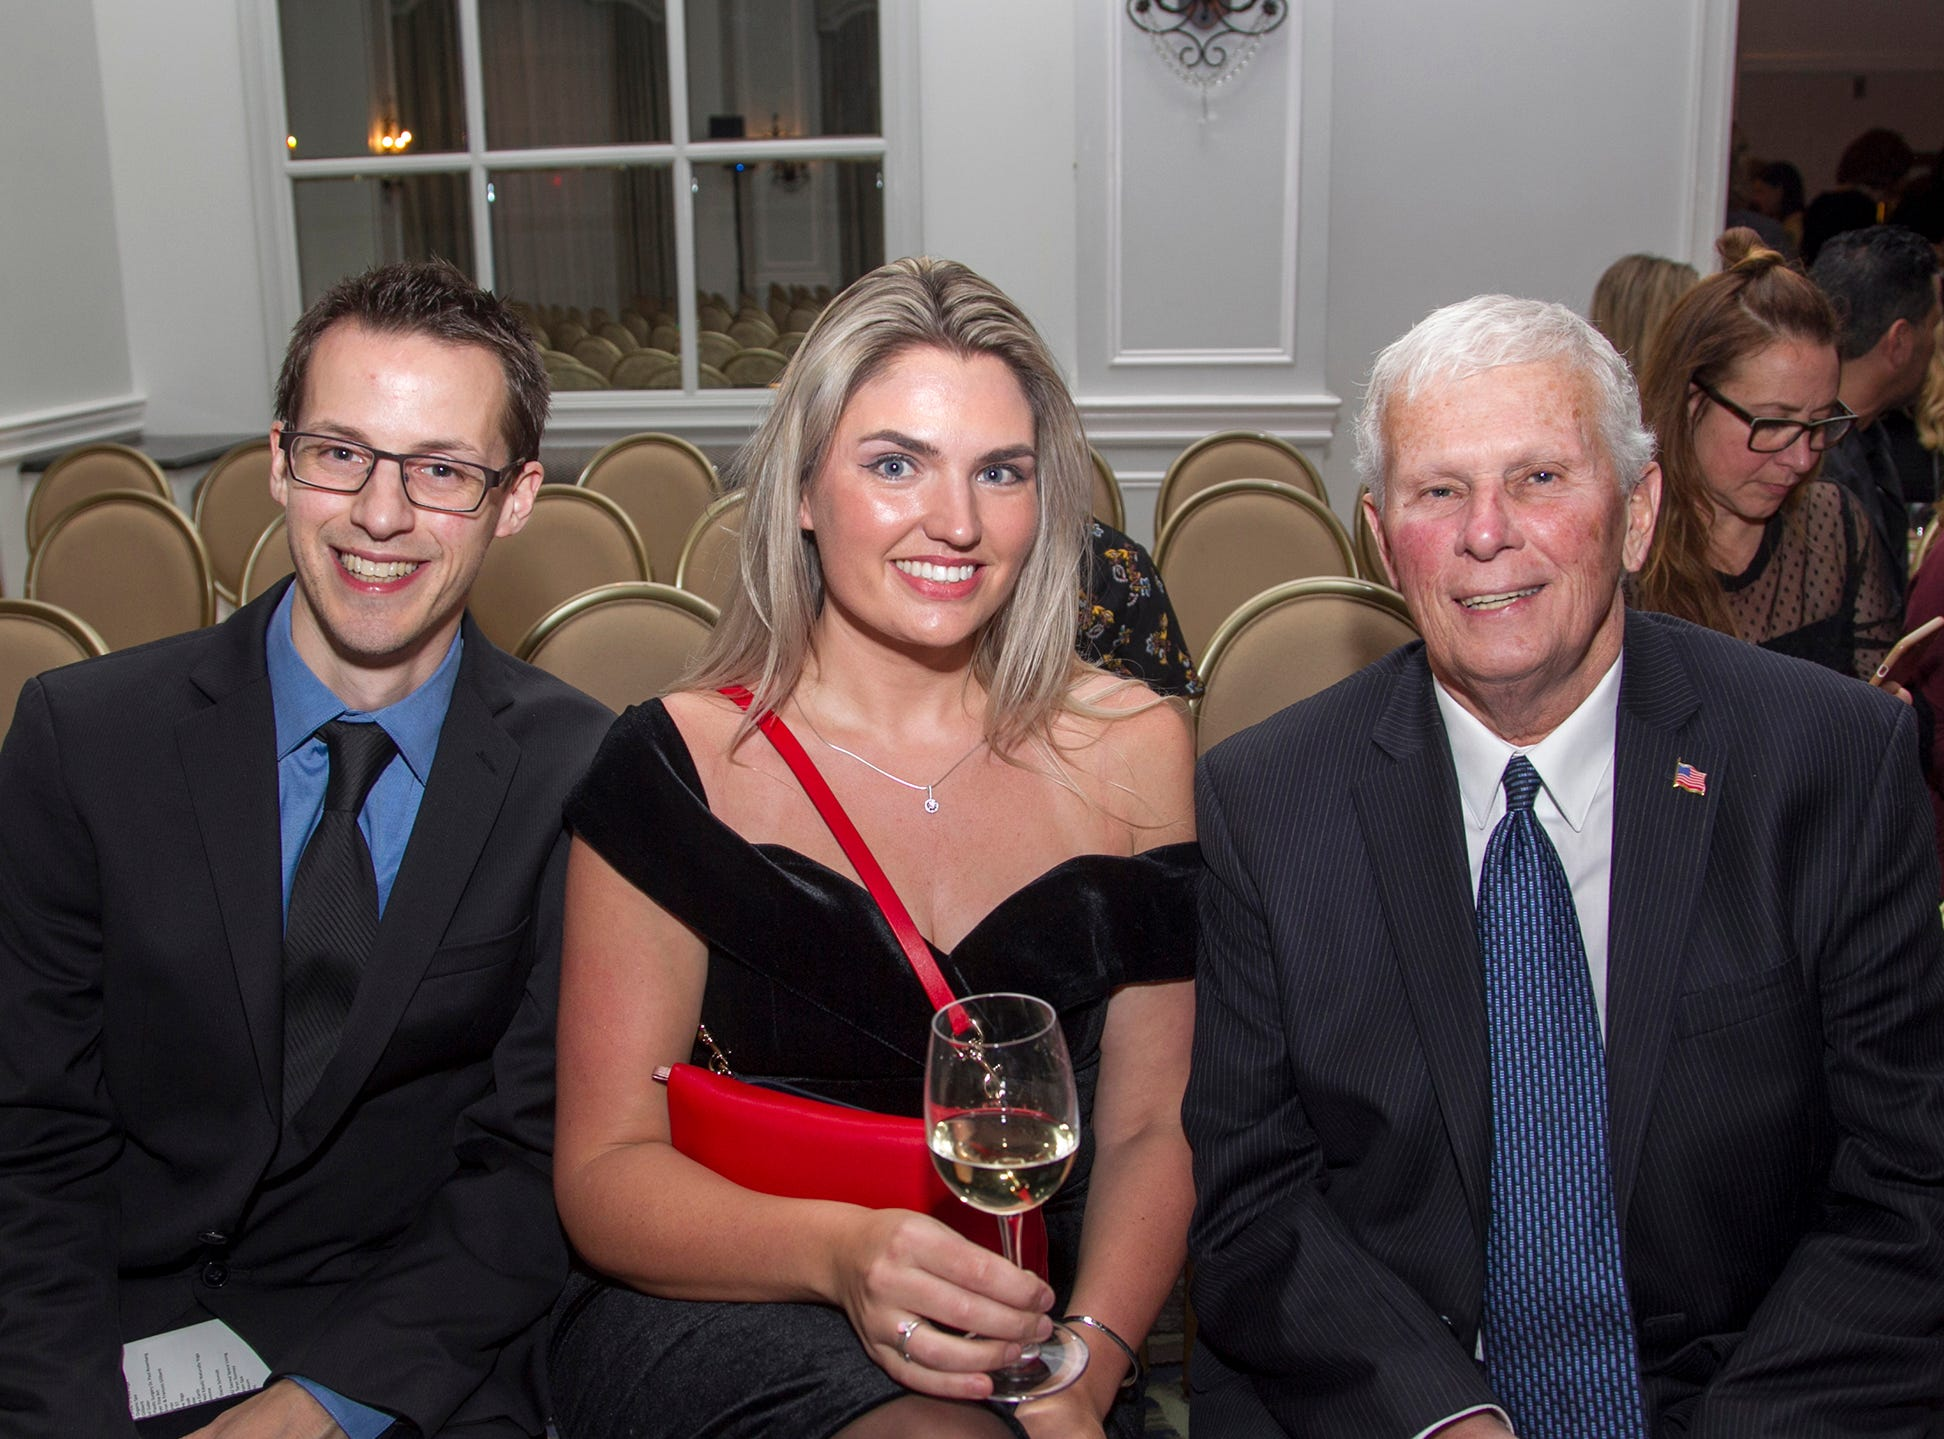 Phil Wilkens, Kathryn Delaney, Tom Fitzgerald. Kula for Karma's 11th Anniversary gala at Pearl River Hilton. 11/05/2018